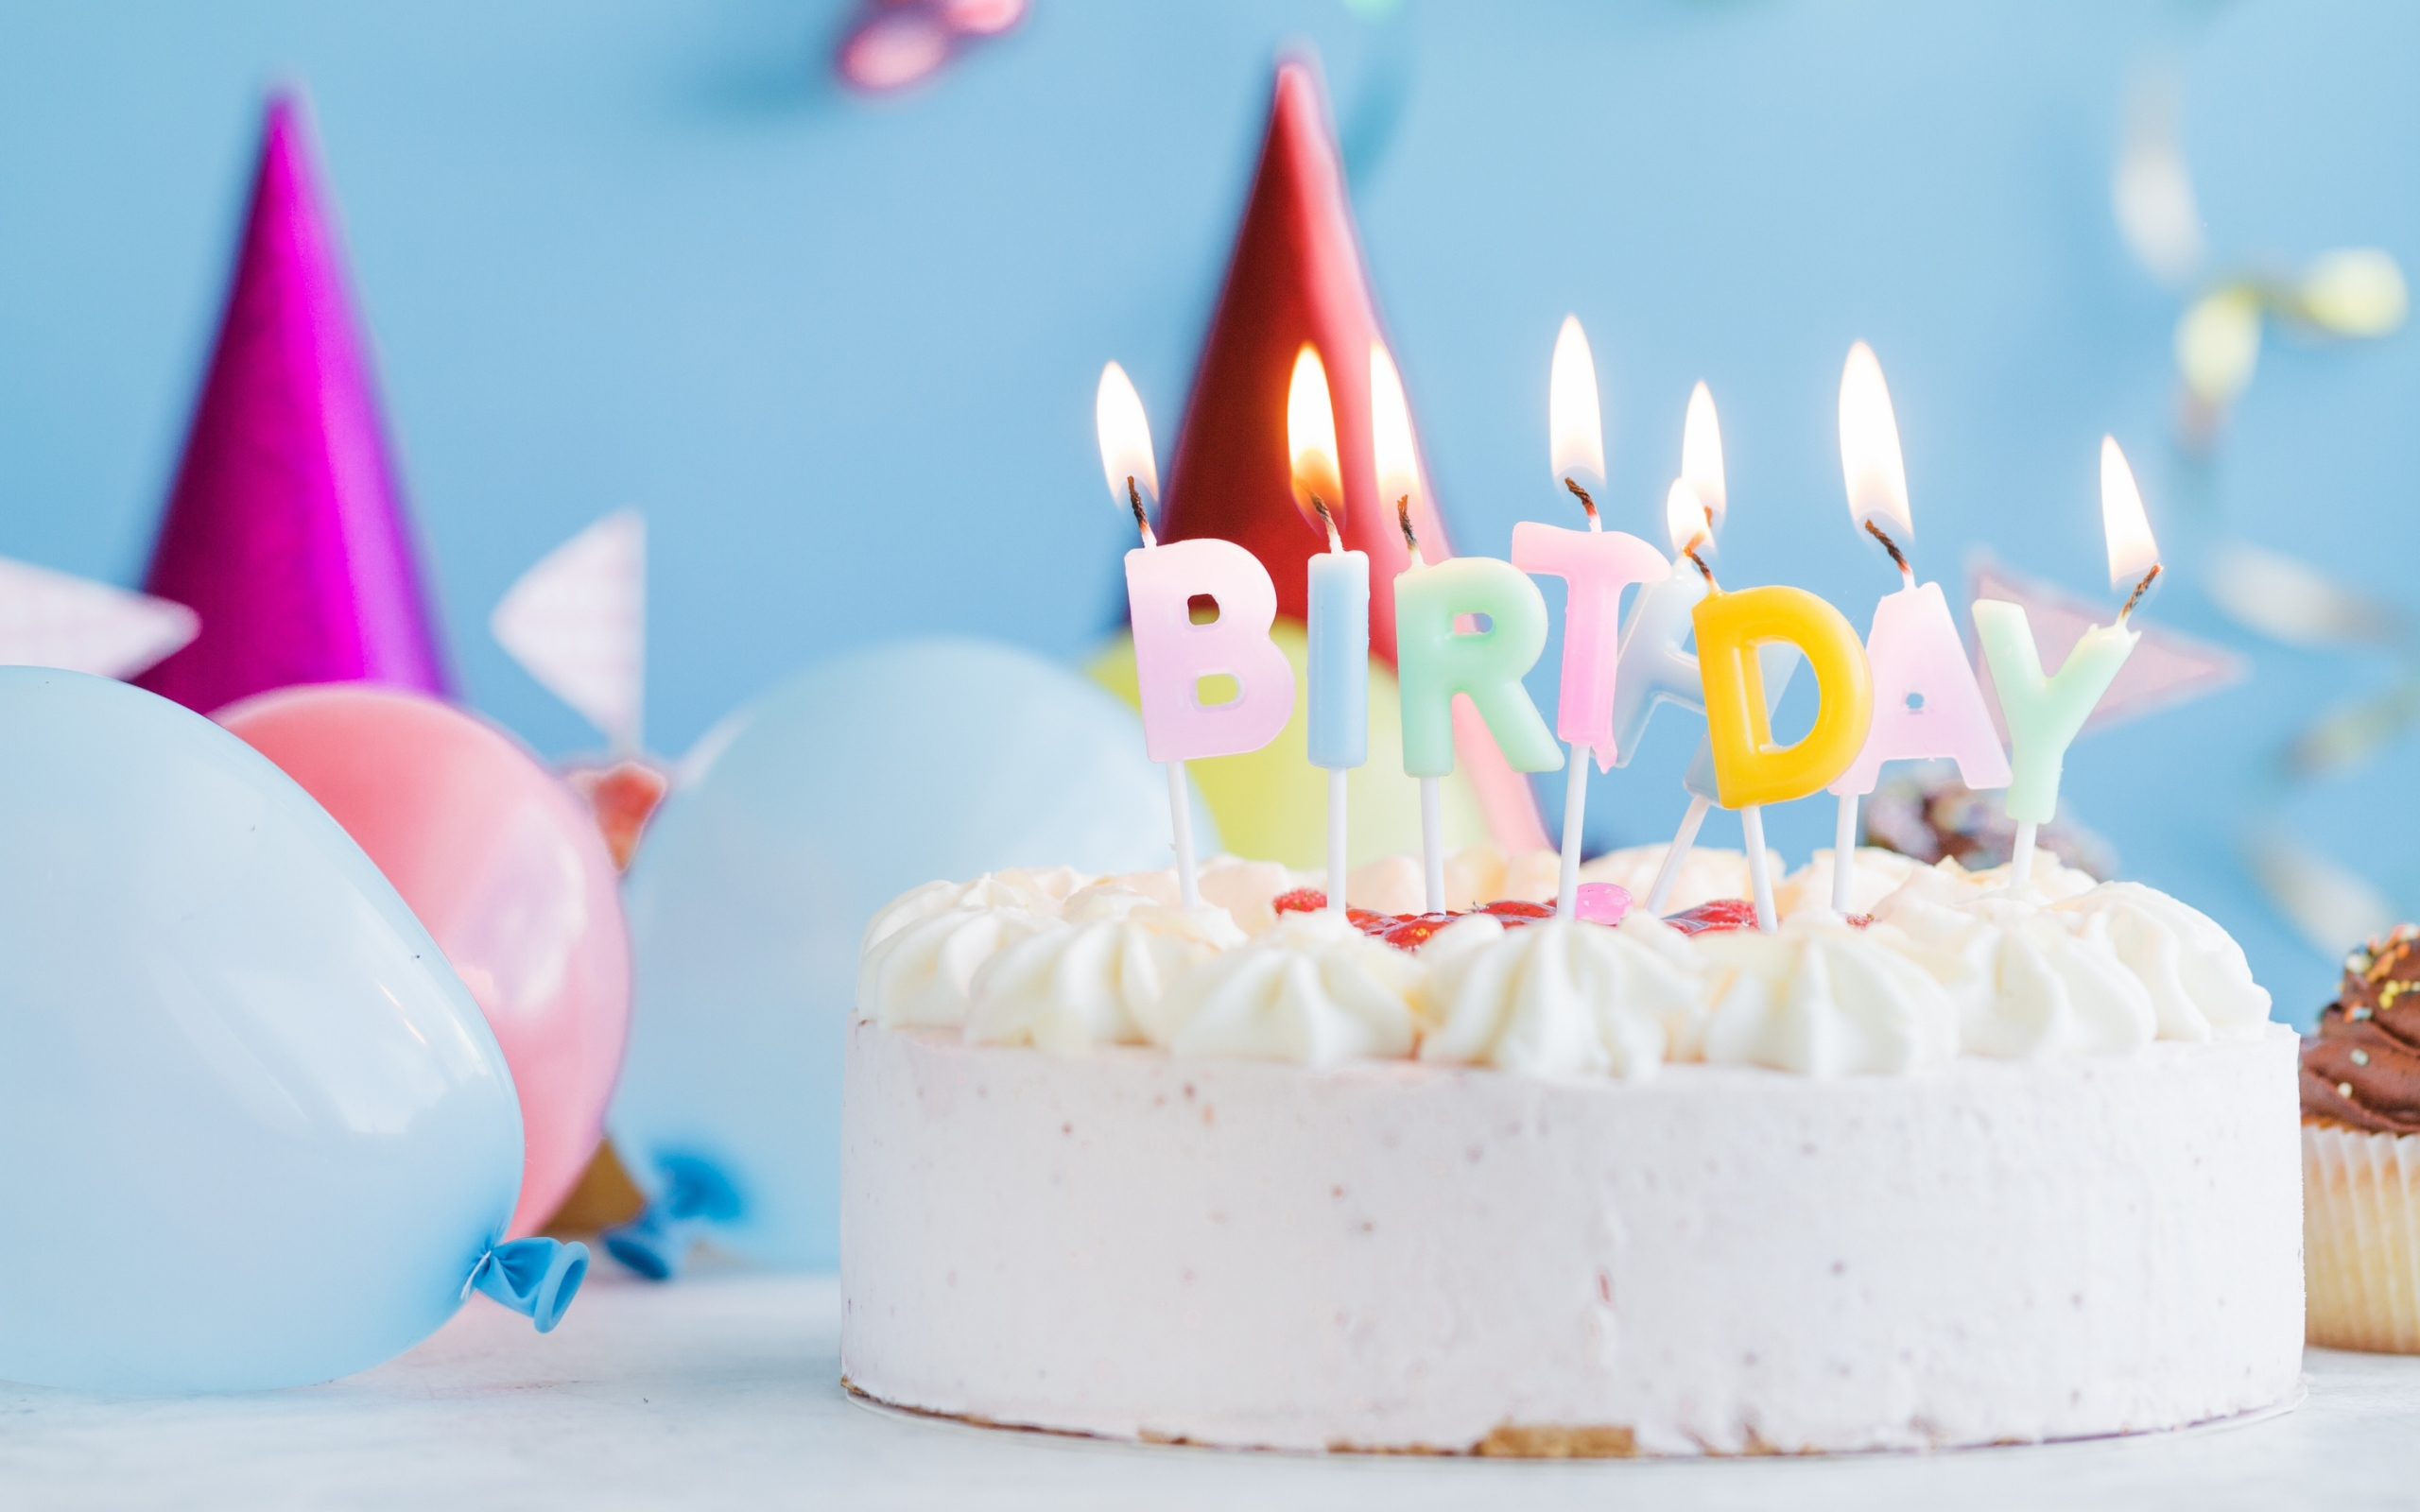 Wallpaper Of Birthday Cake Candle Pastry Background Hd Image